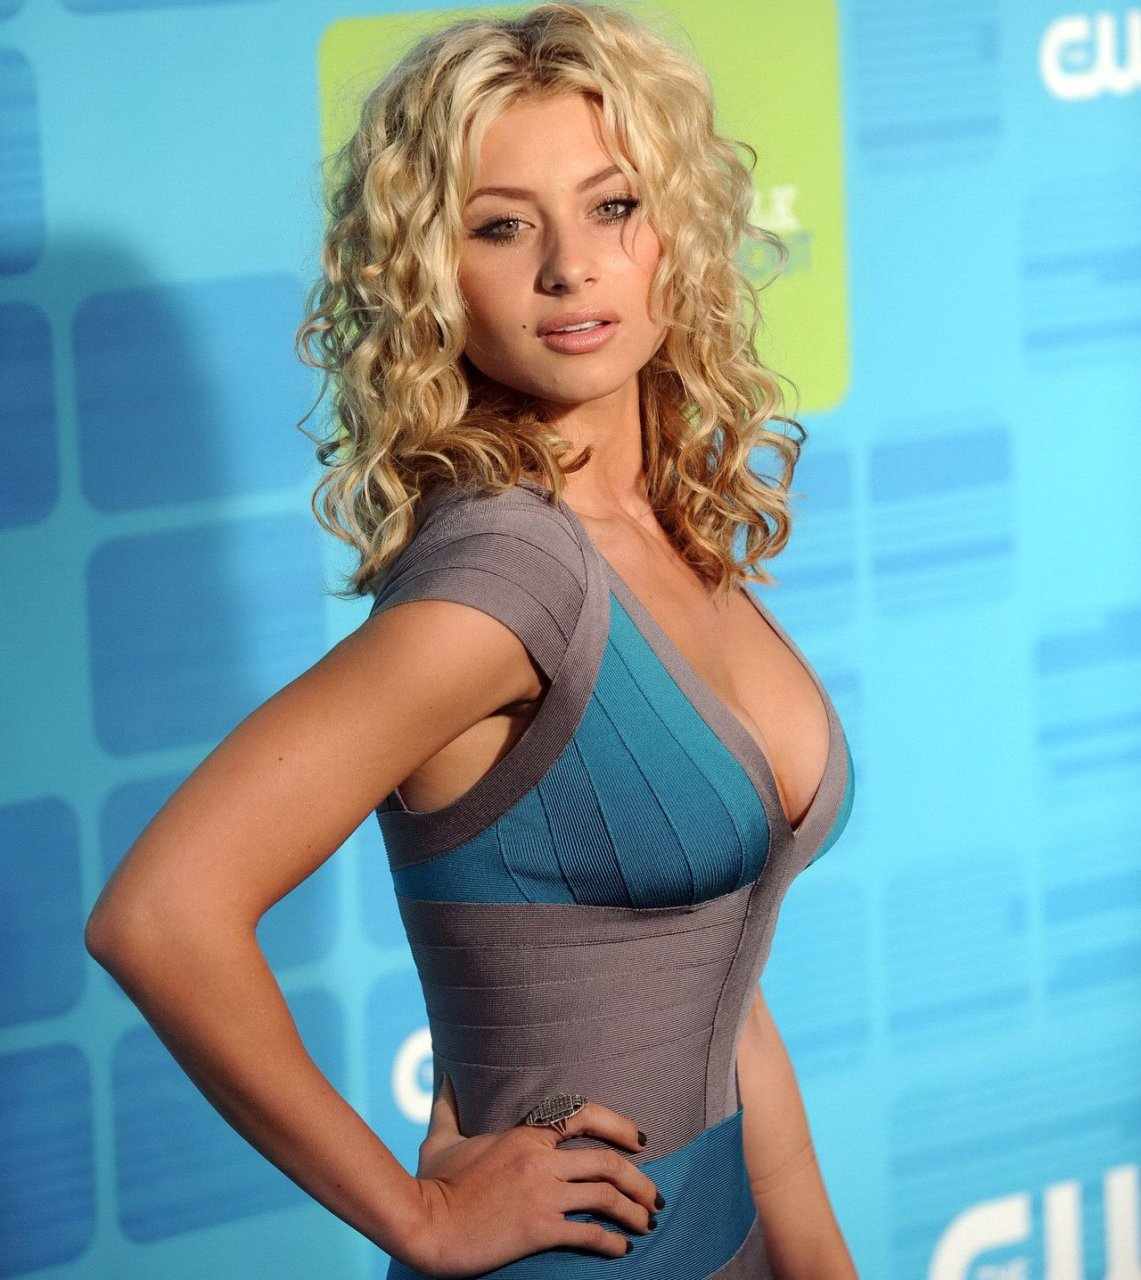 Aly Michalka Sex aly michalka nude photos and videos | #thefappening